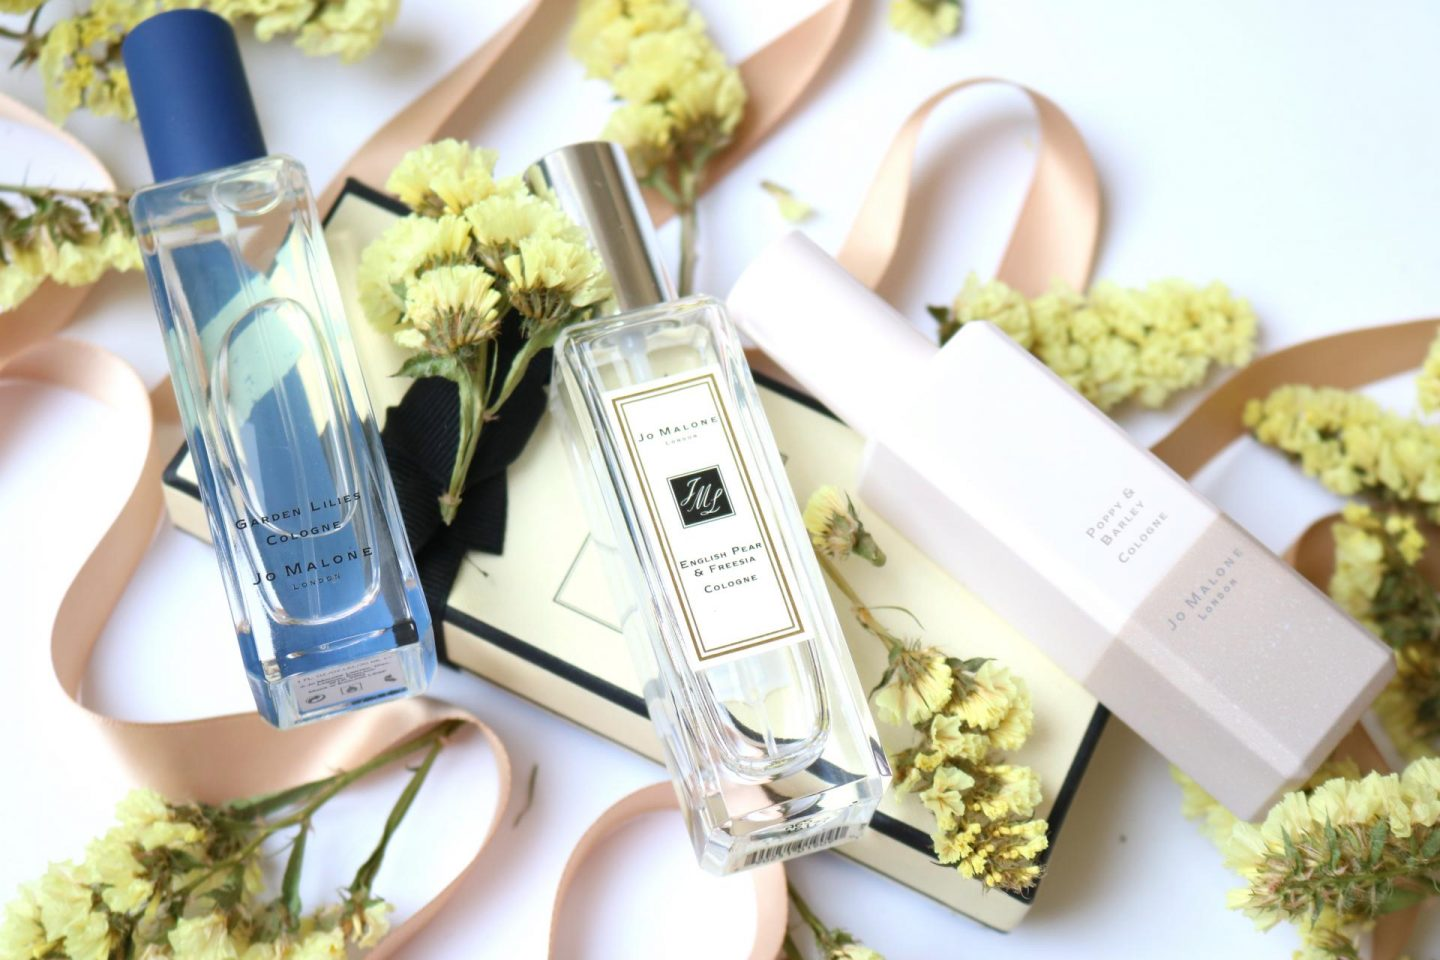 Jo Malone London, English Fields and others